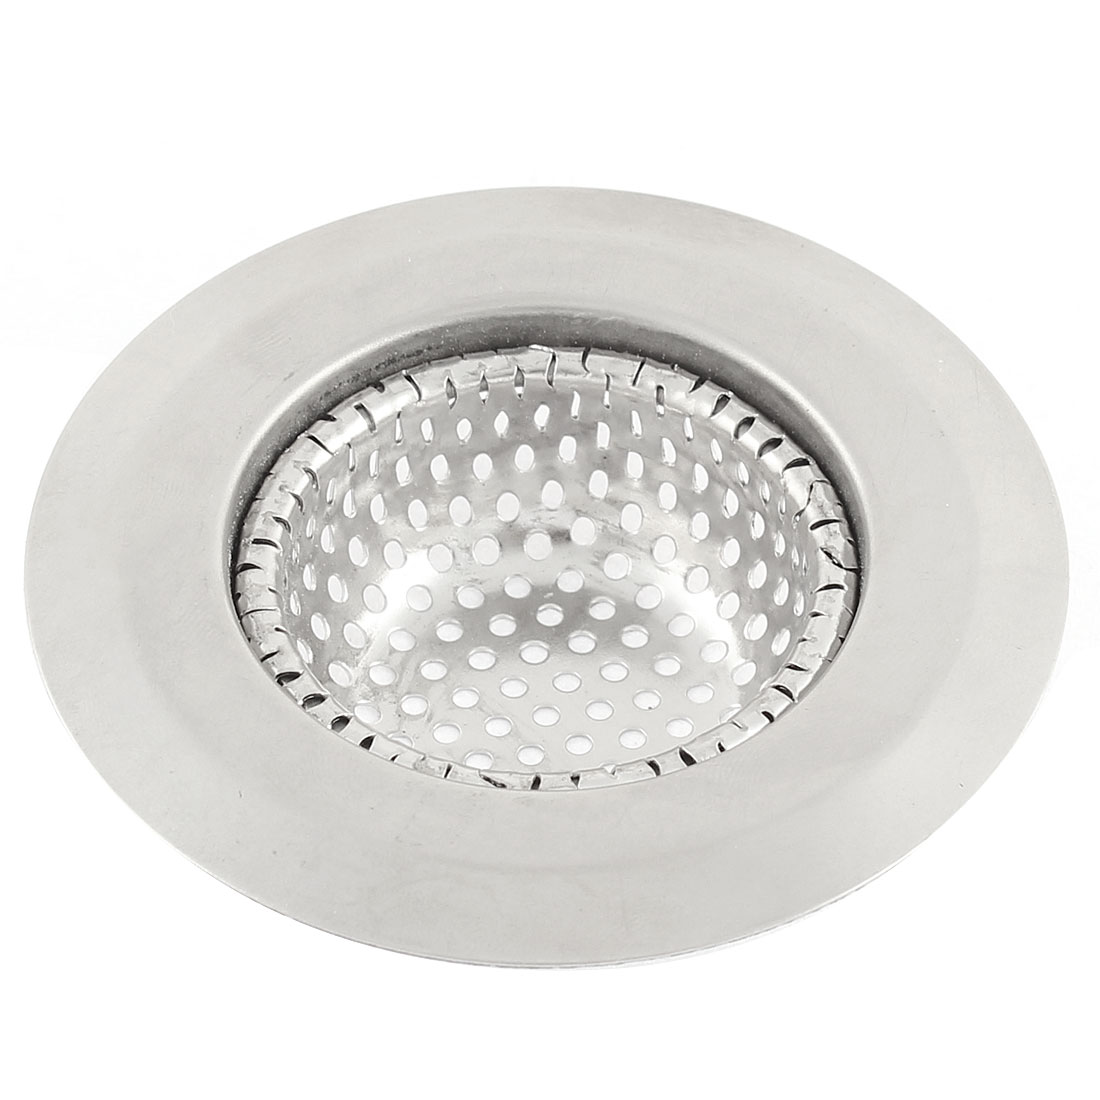 Bathroom Shower Bathtub Sink Basin Mesh Strainer Drain Drainer Waste Disposal Stopper 7.3cm Dia